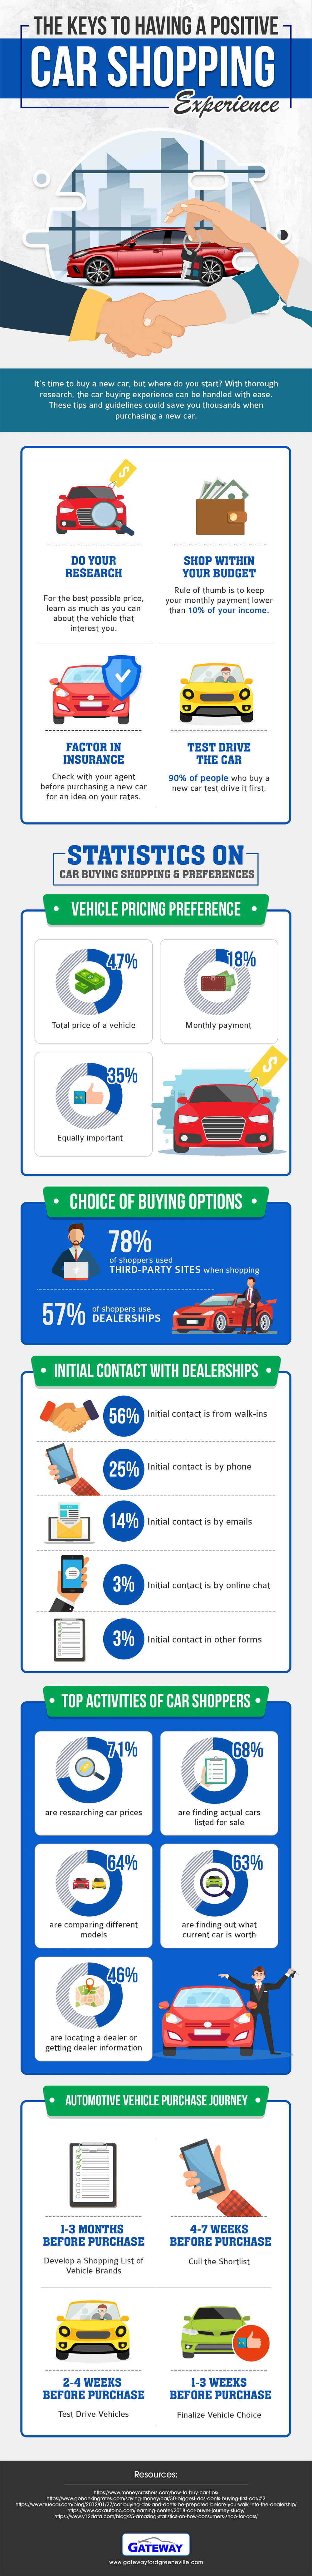 The Keys to Having a Positive Car Shopping Experience